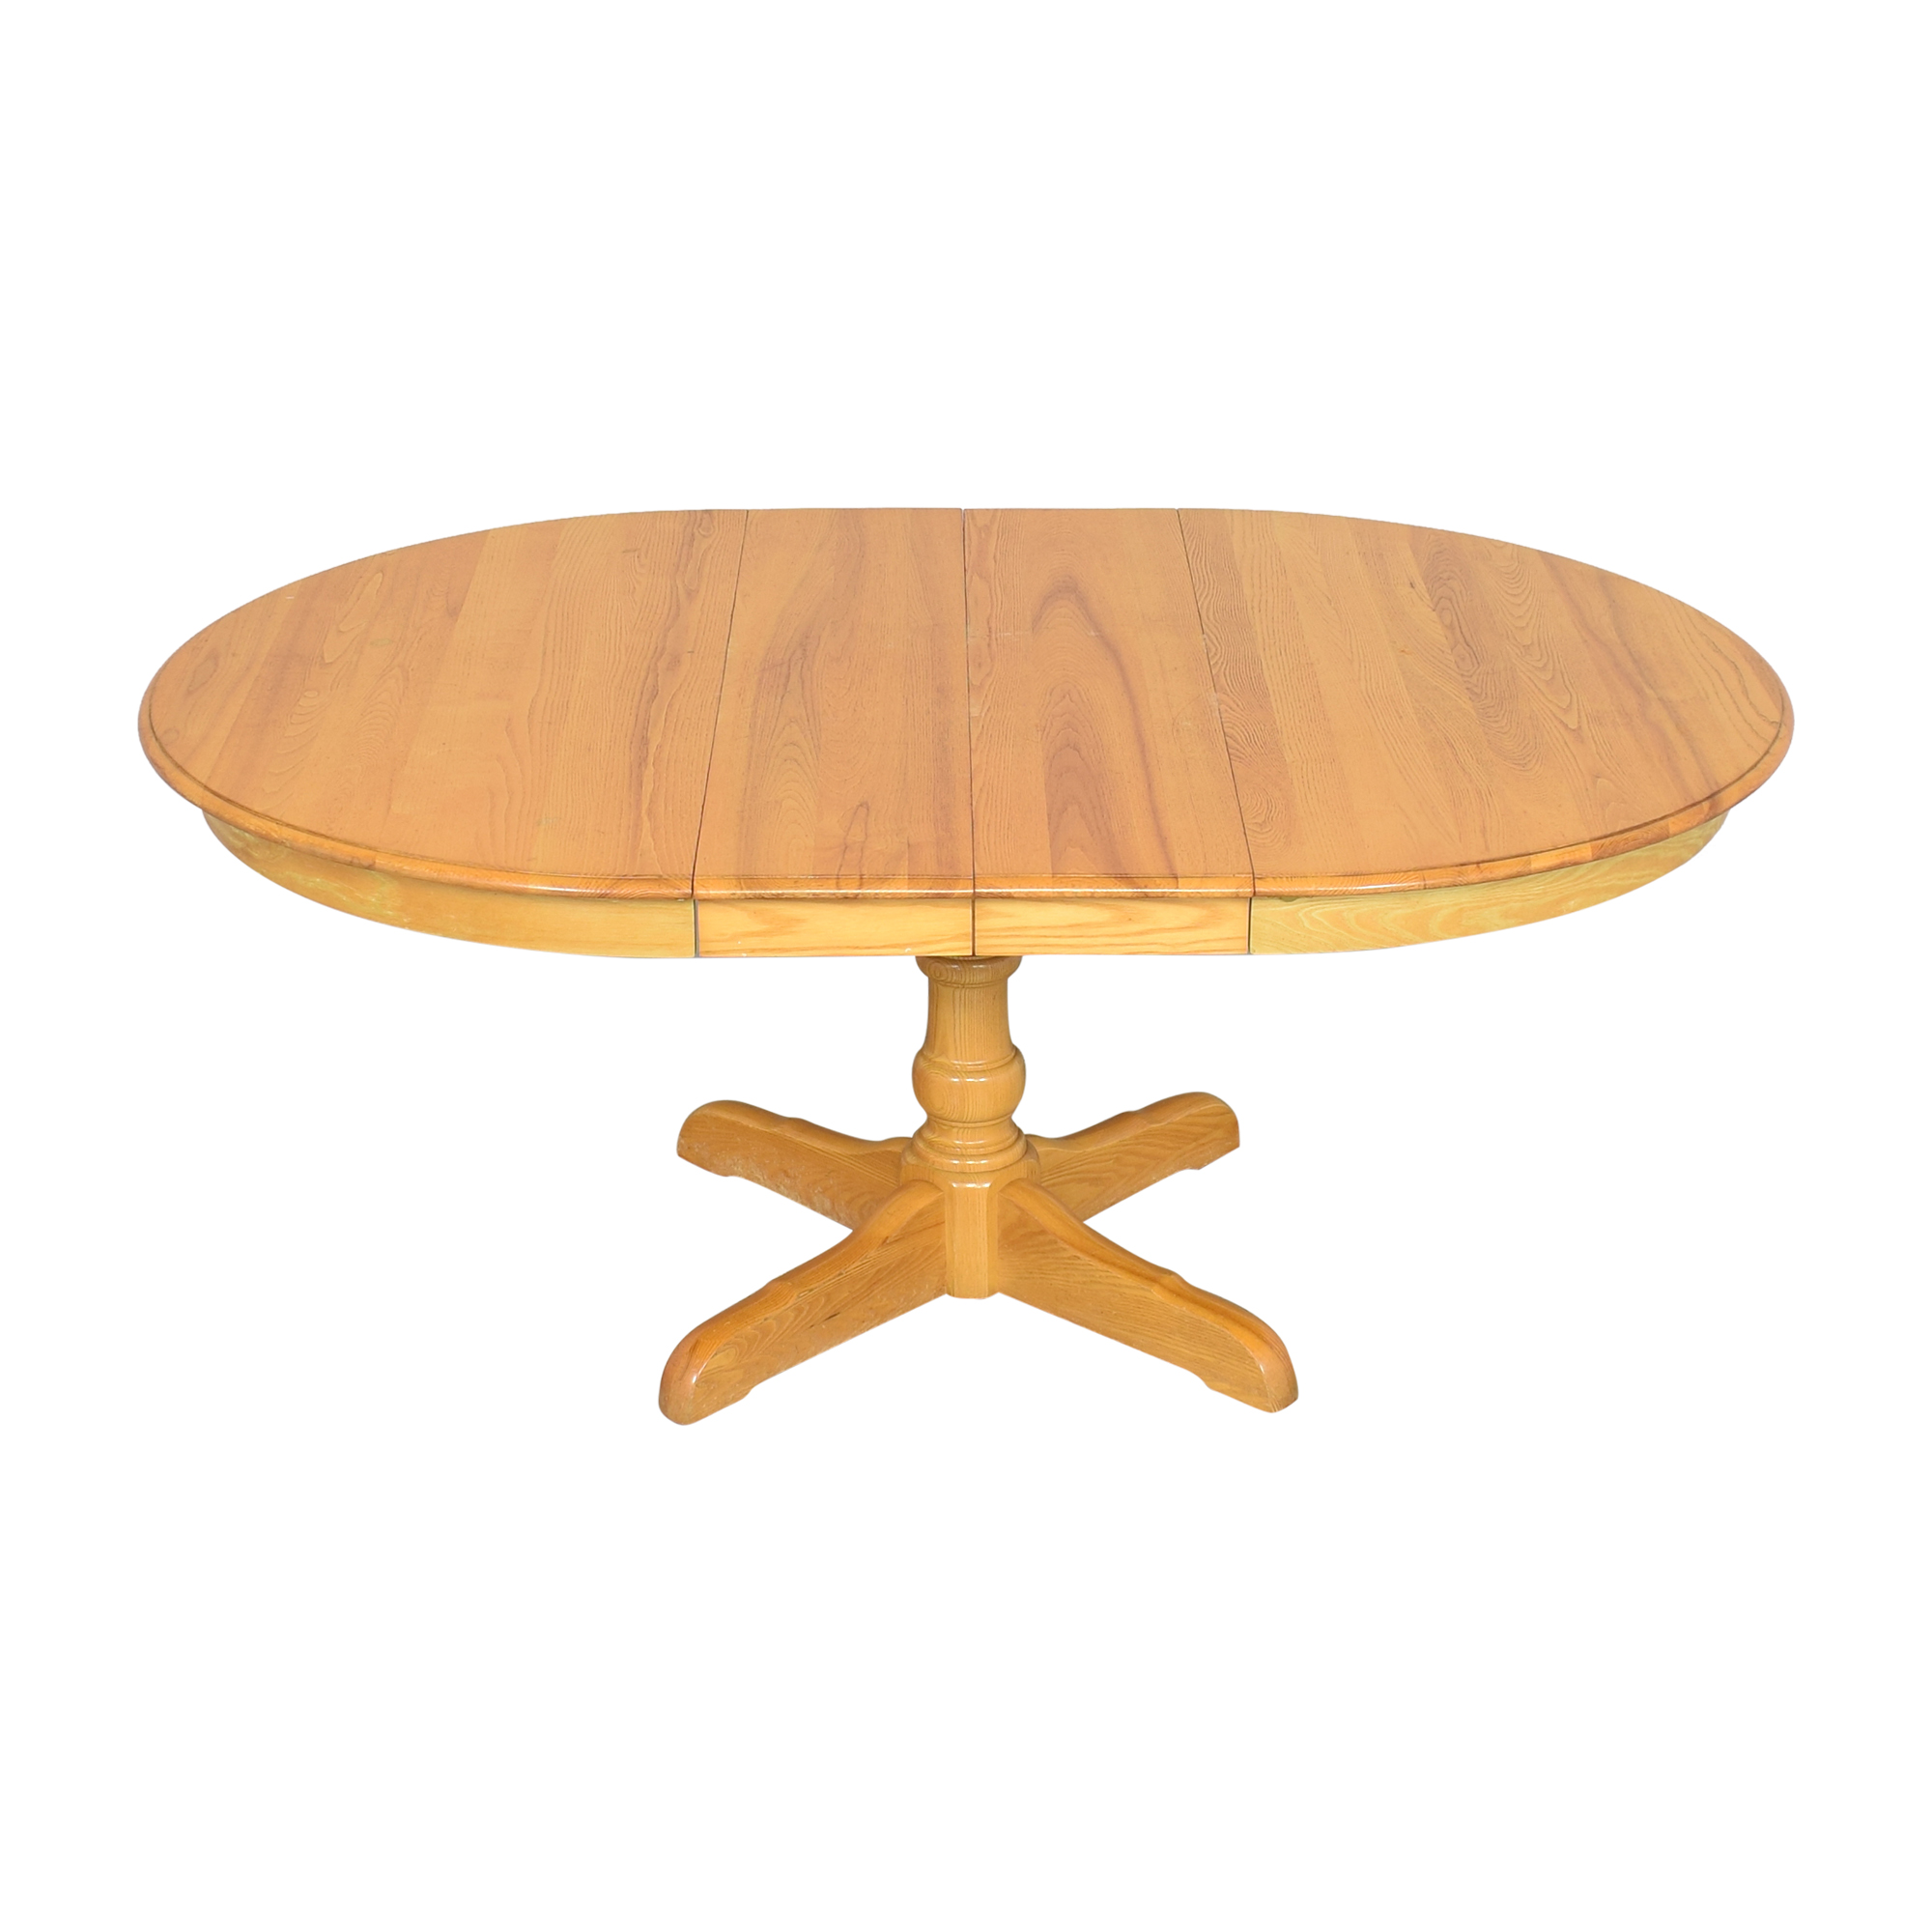 buy Hitchcock Hitchcock Round Extendable Dining Table online